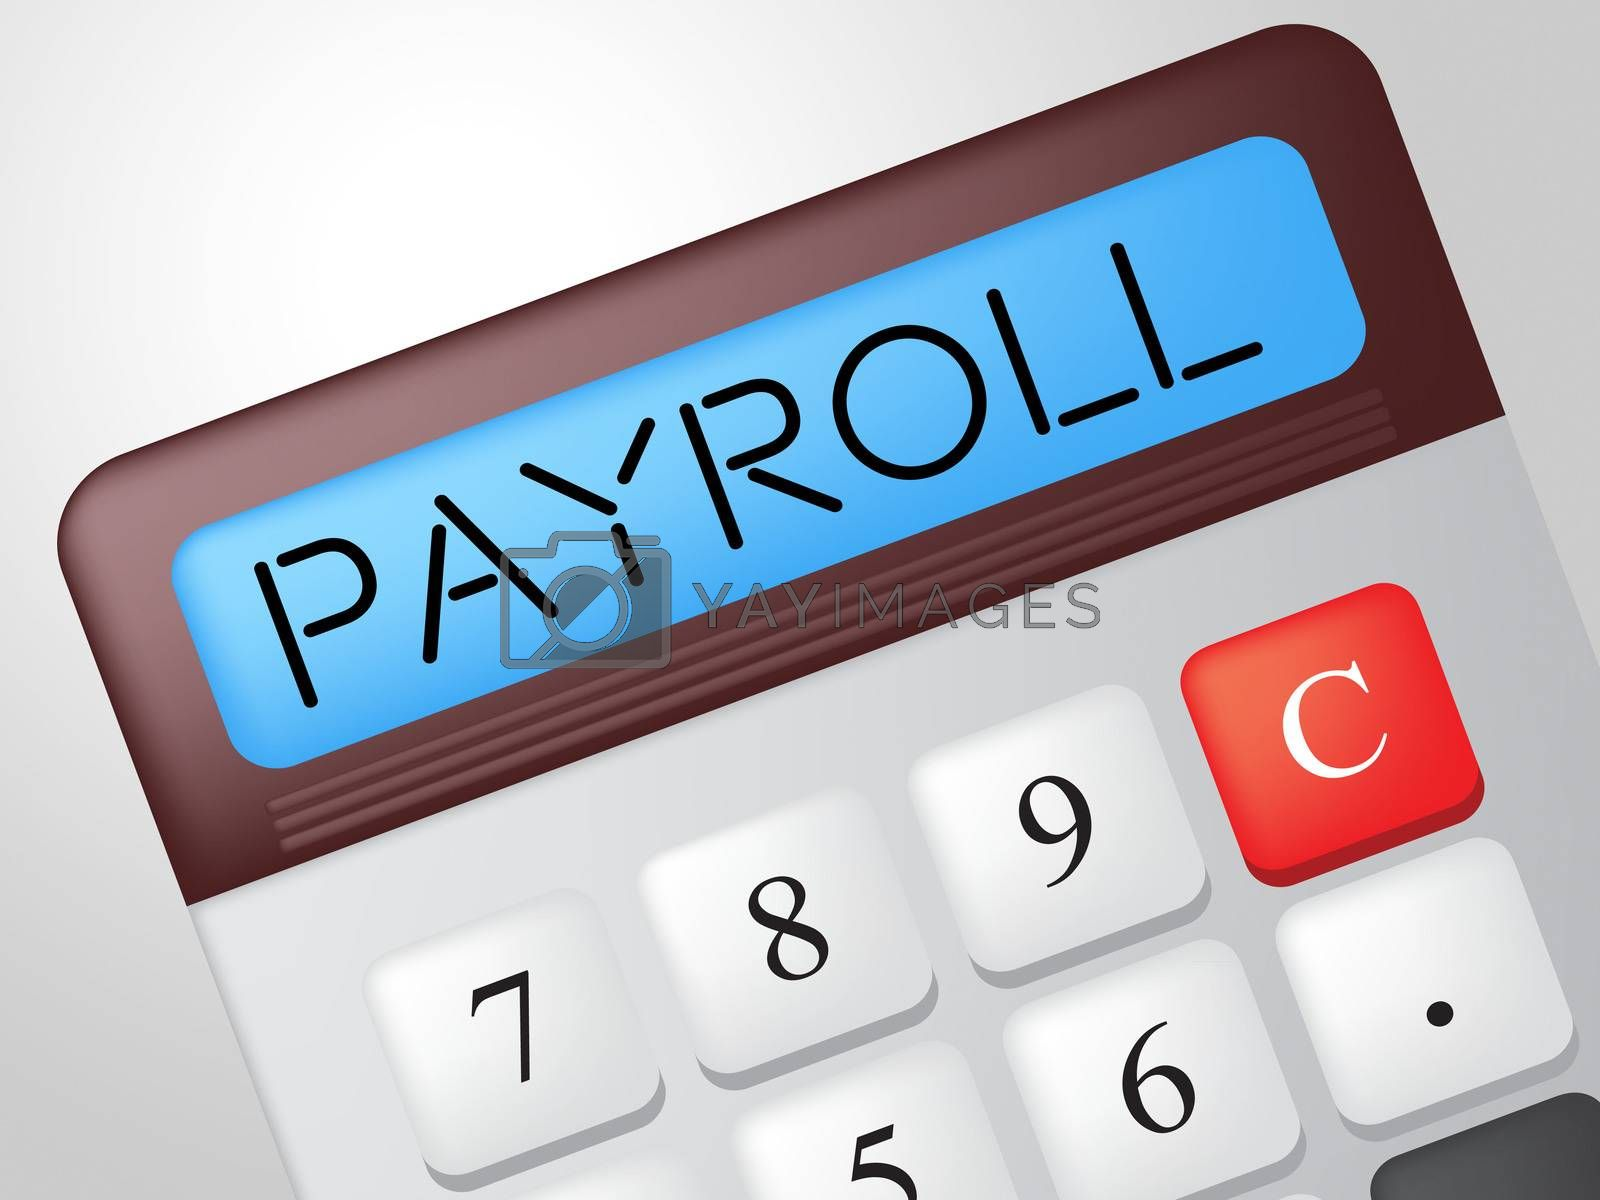 Payroll Calculator Shows Earns Payday And Salaries by stuartmiles